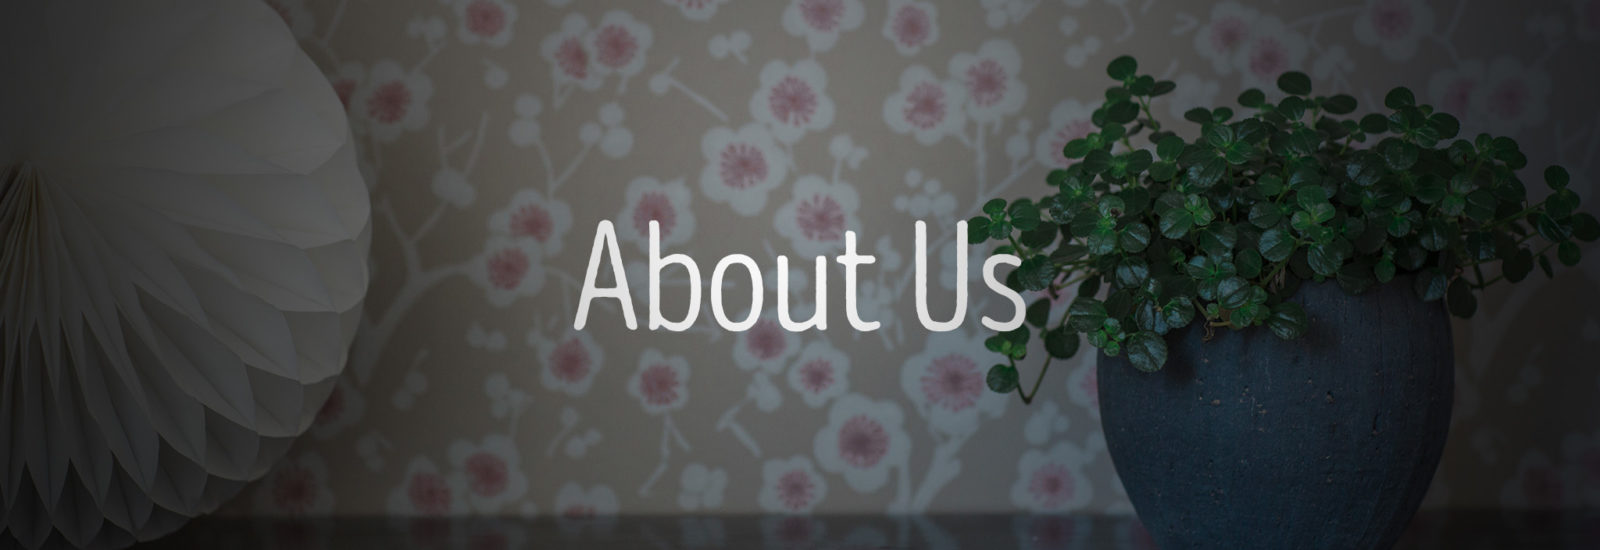 About Us Page Header Image